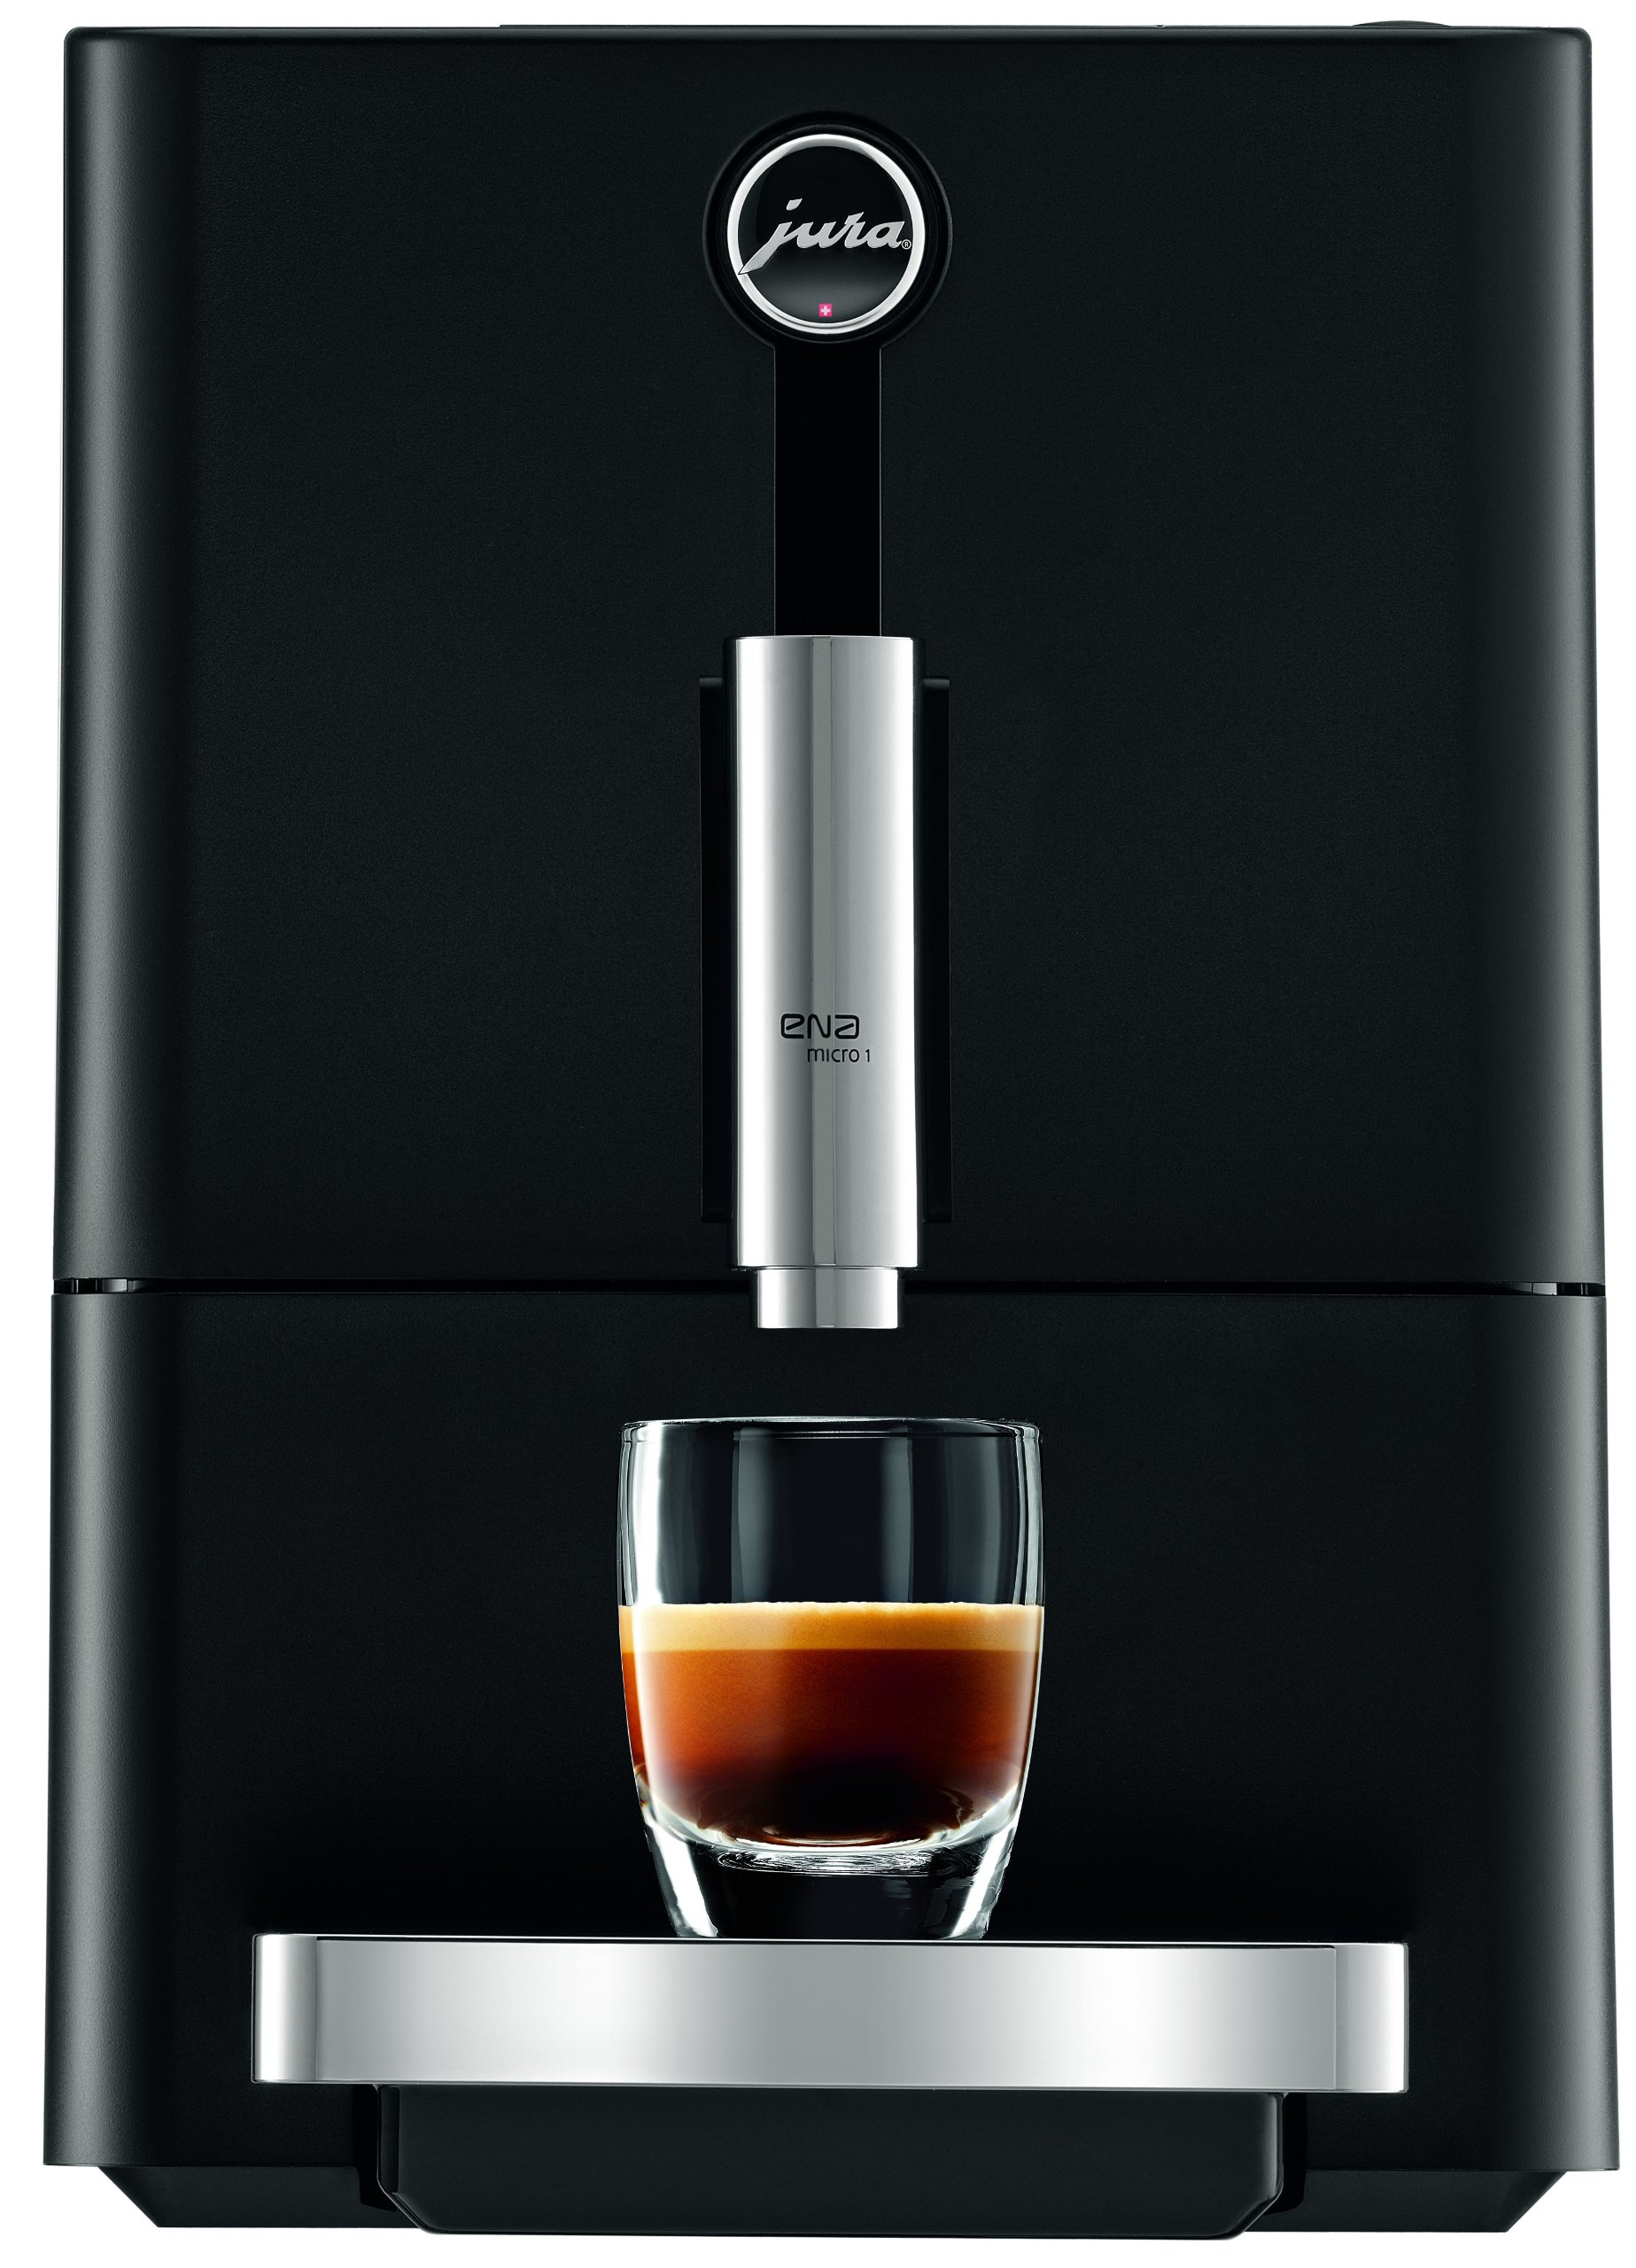 Jura 13626 Ena Micro 1 Automatic Coffee Machine, Micro Black